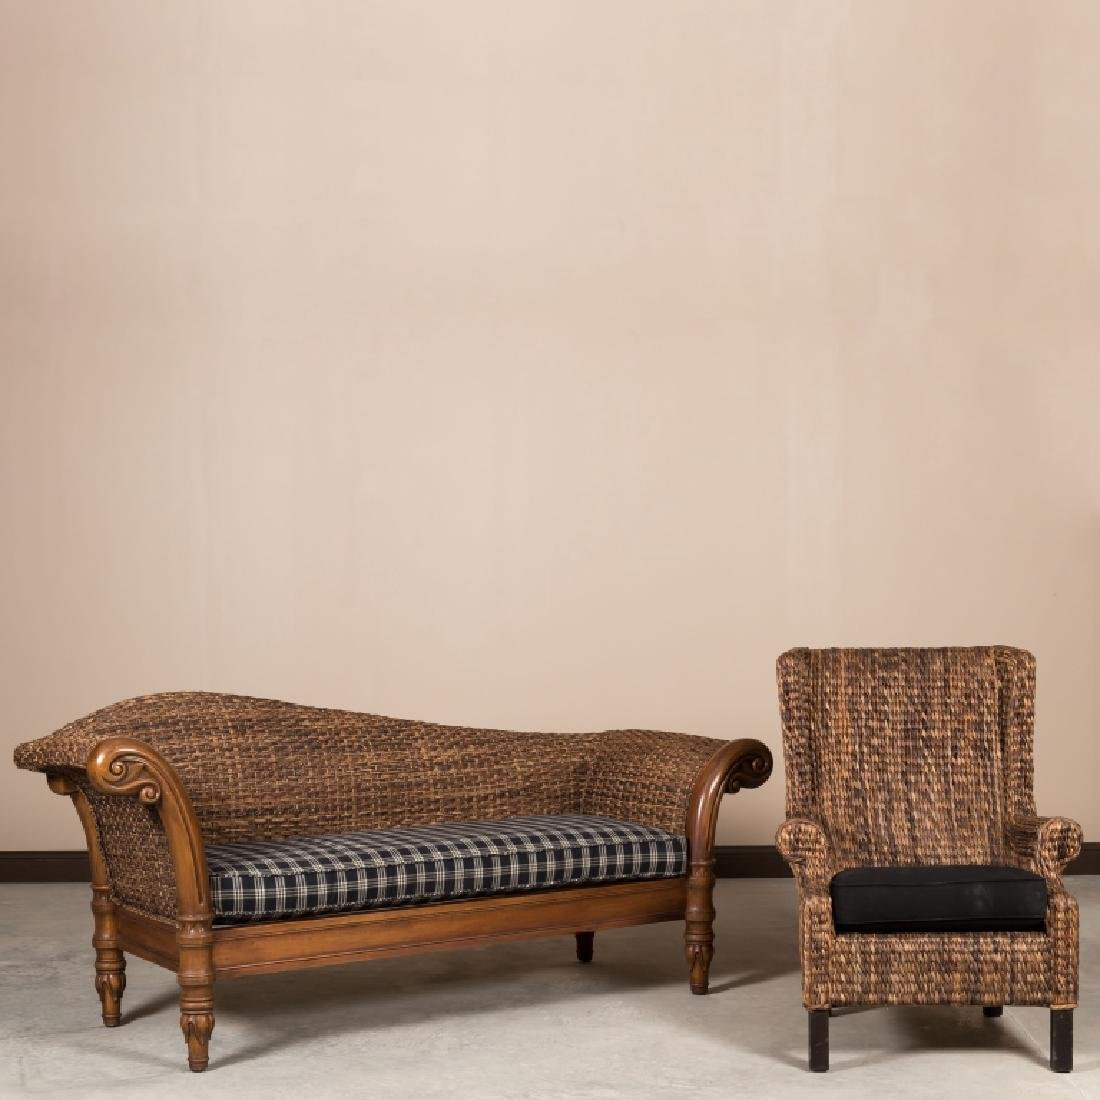 Crate and Barrel Recamier Sofa and Wing Chair